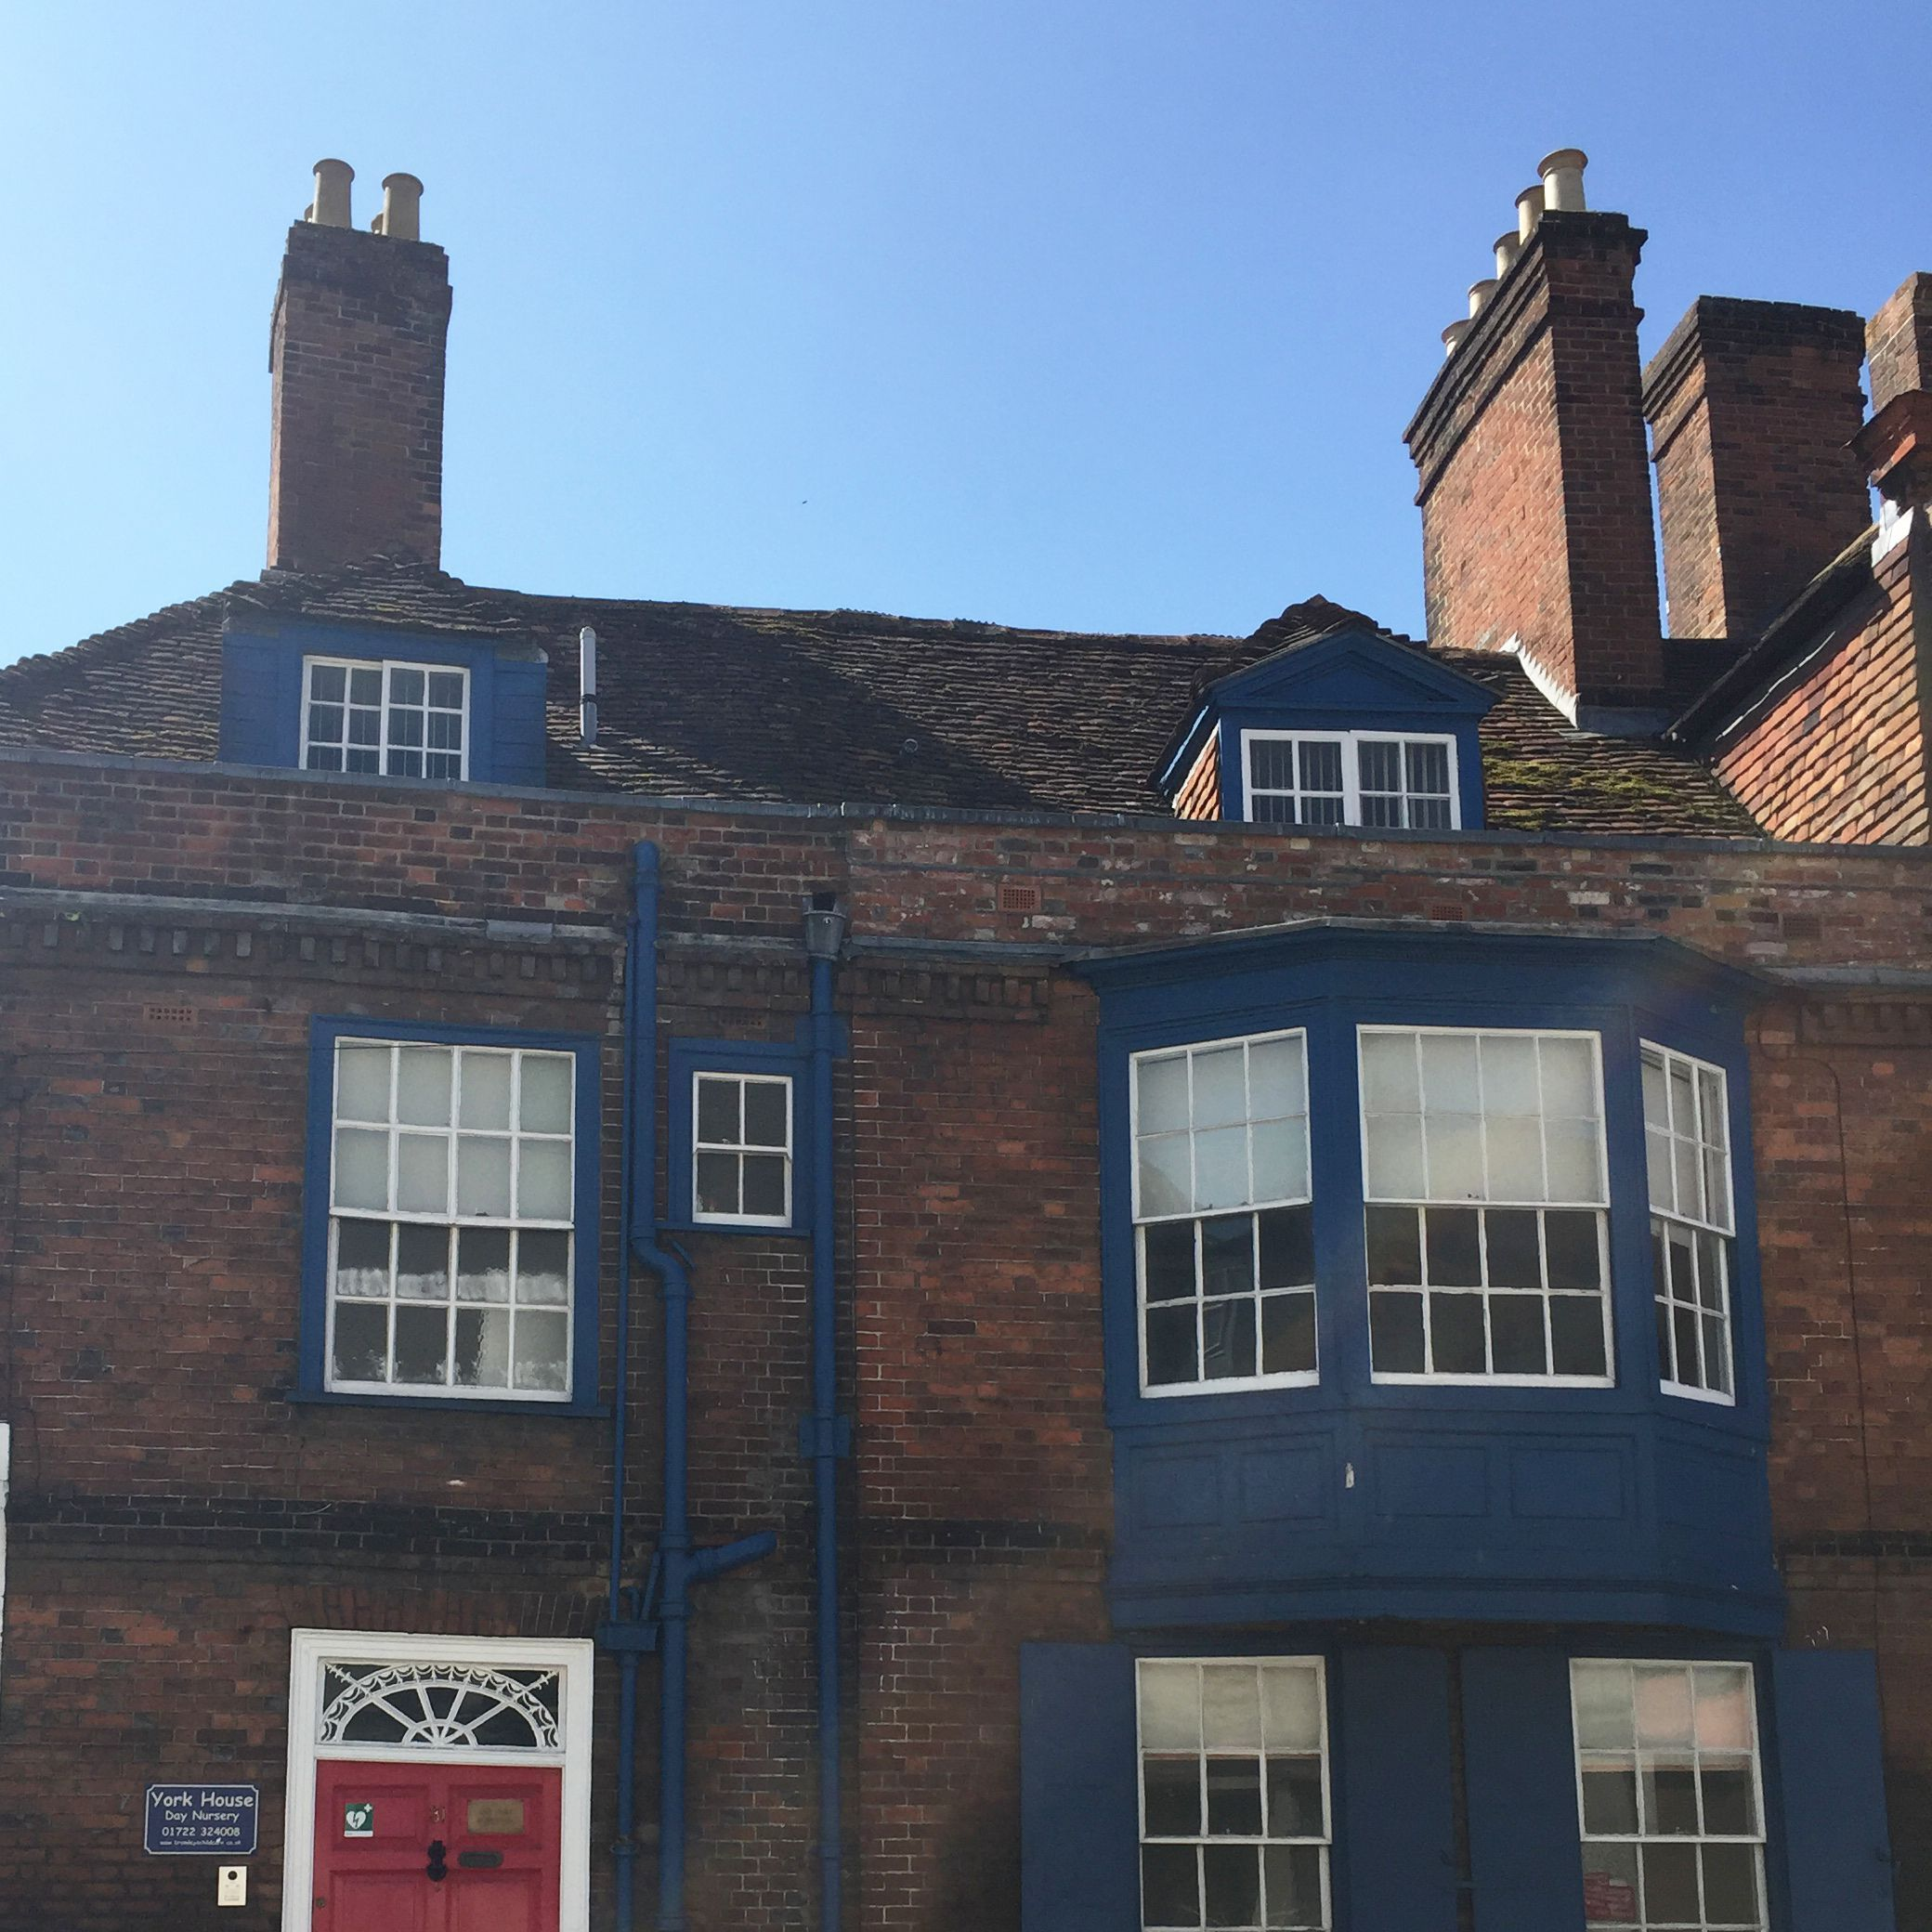 Flower Blue Cast Iron Downpipes And Soil Pipes In The Sunshine In Salisbury Last Weekend Flowerblue Blackisnot House Styles Cast Iron Water Systems